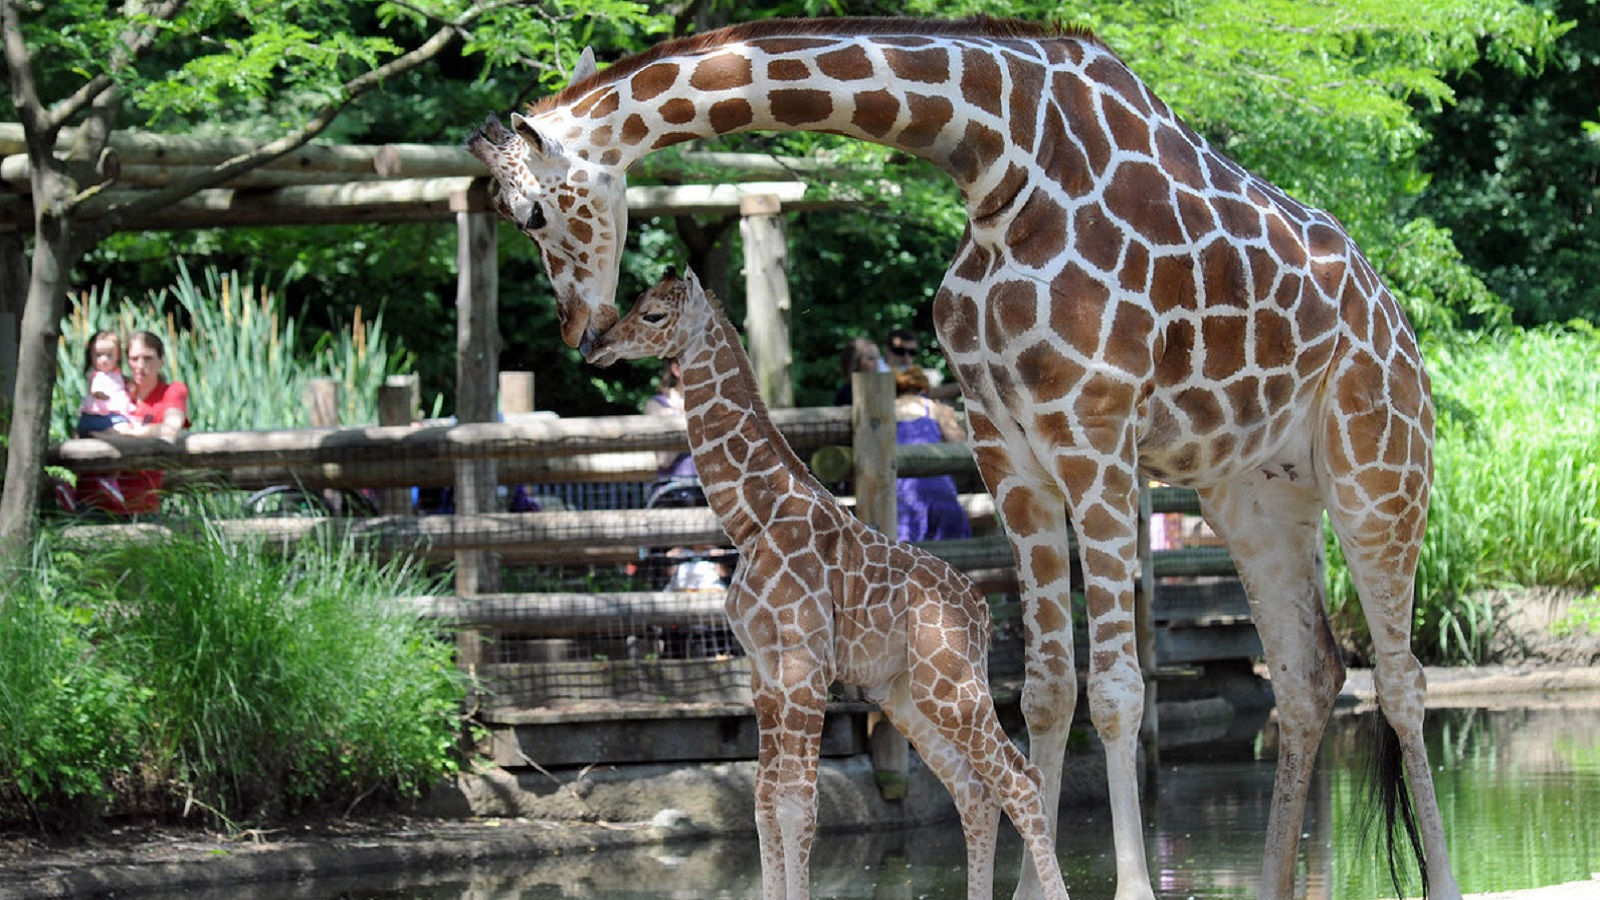 things to do with kids includes visiting Brookfield Zoo